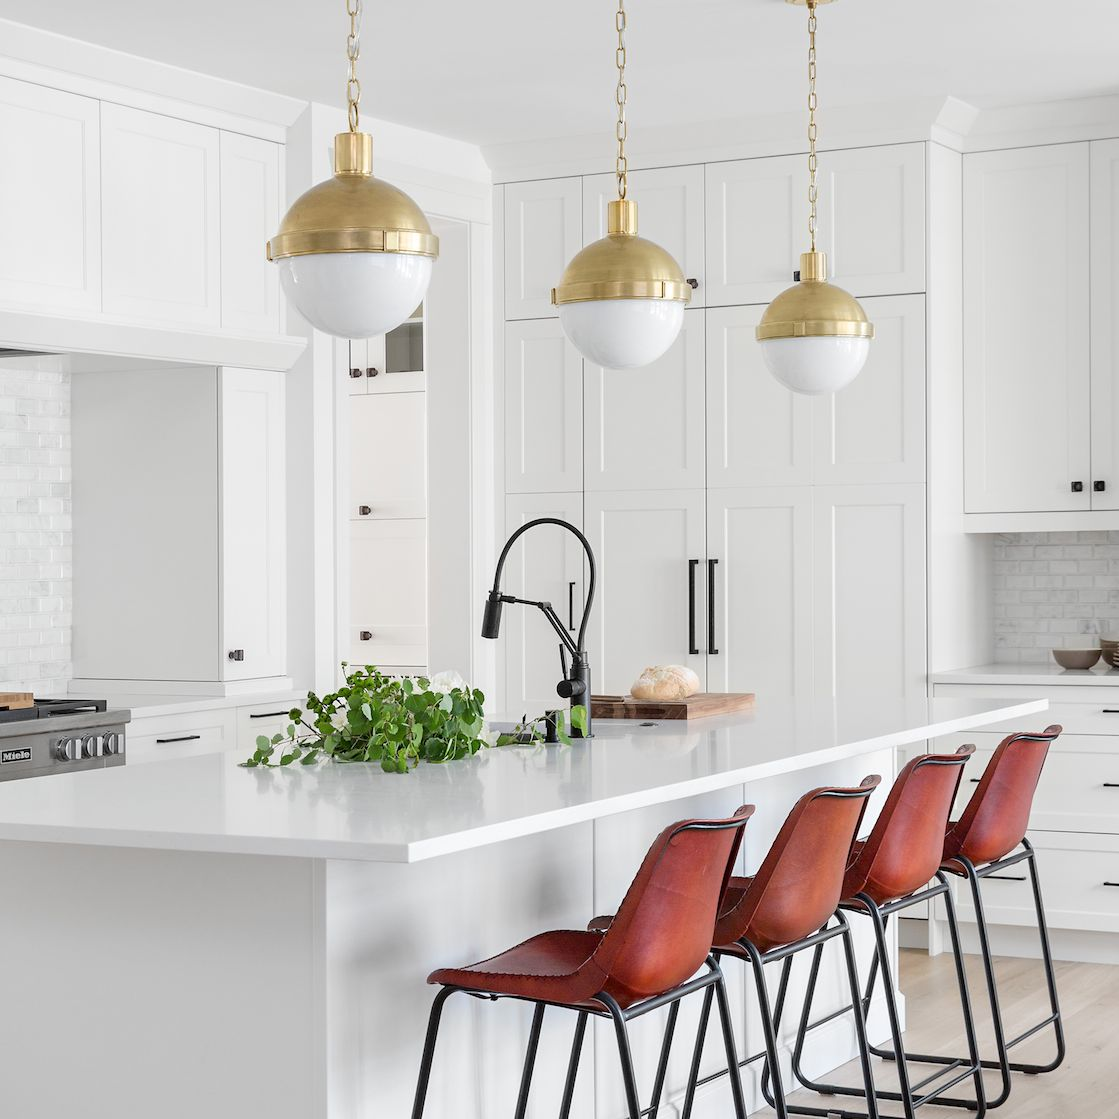 A white kitchen with vibrant red barstools